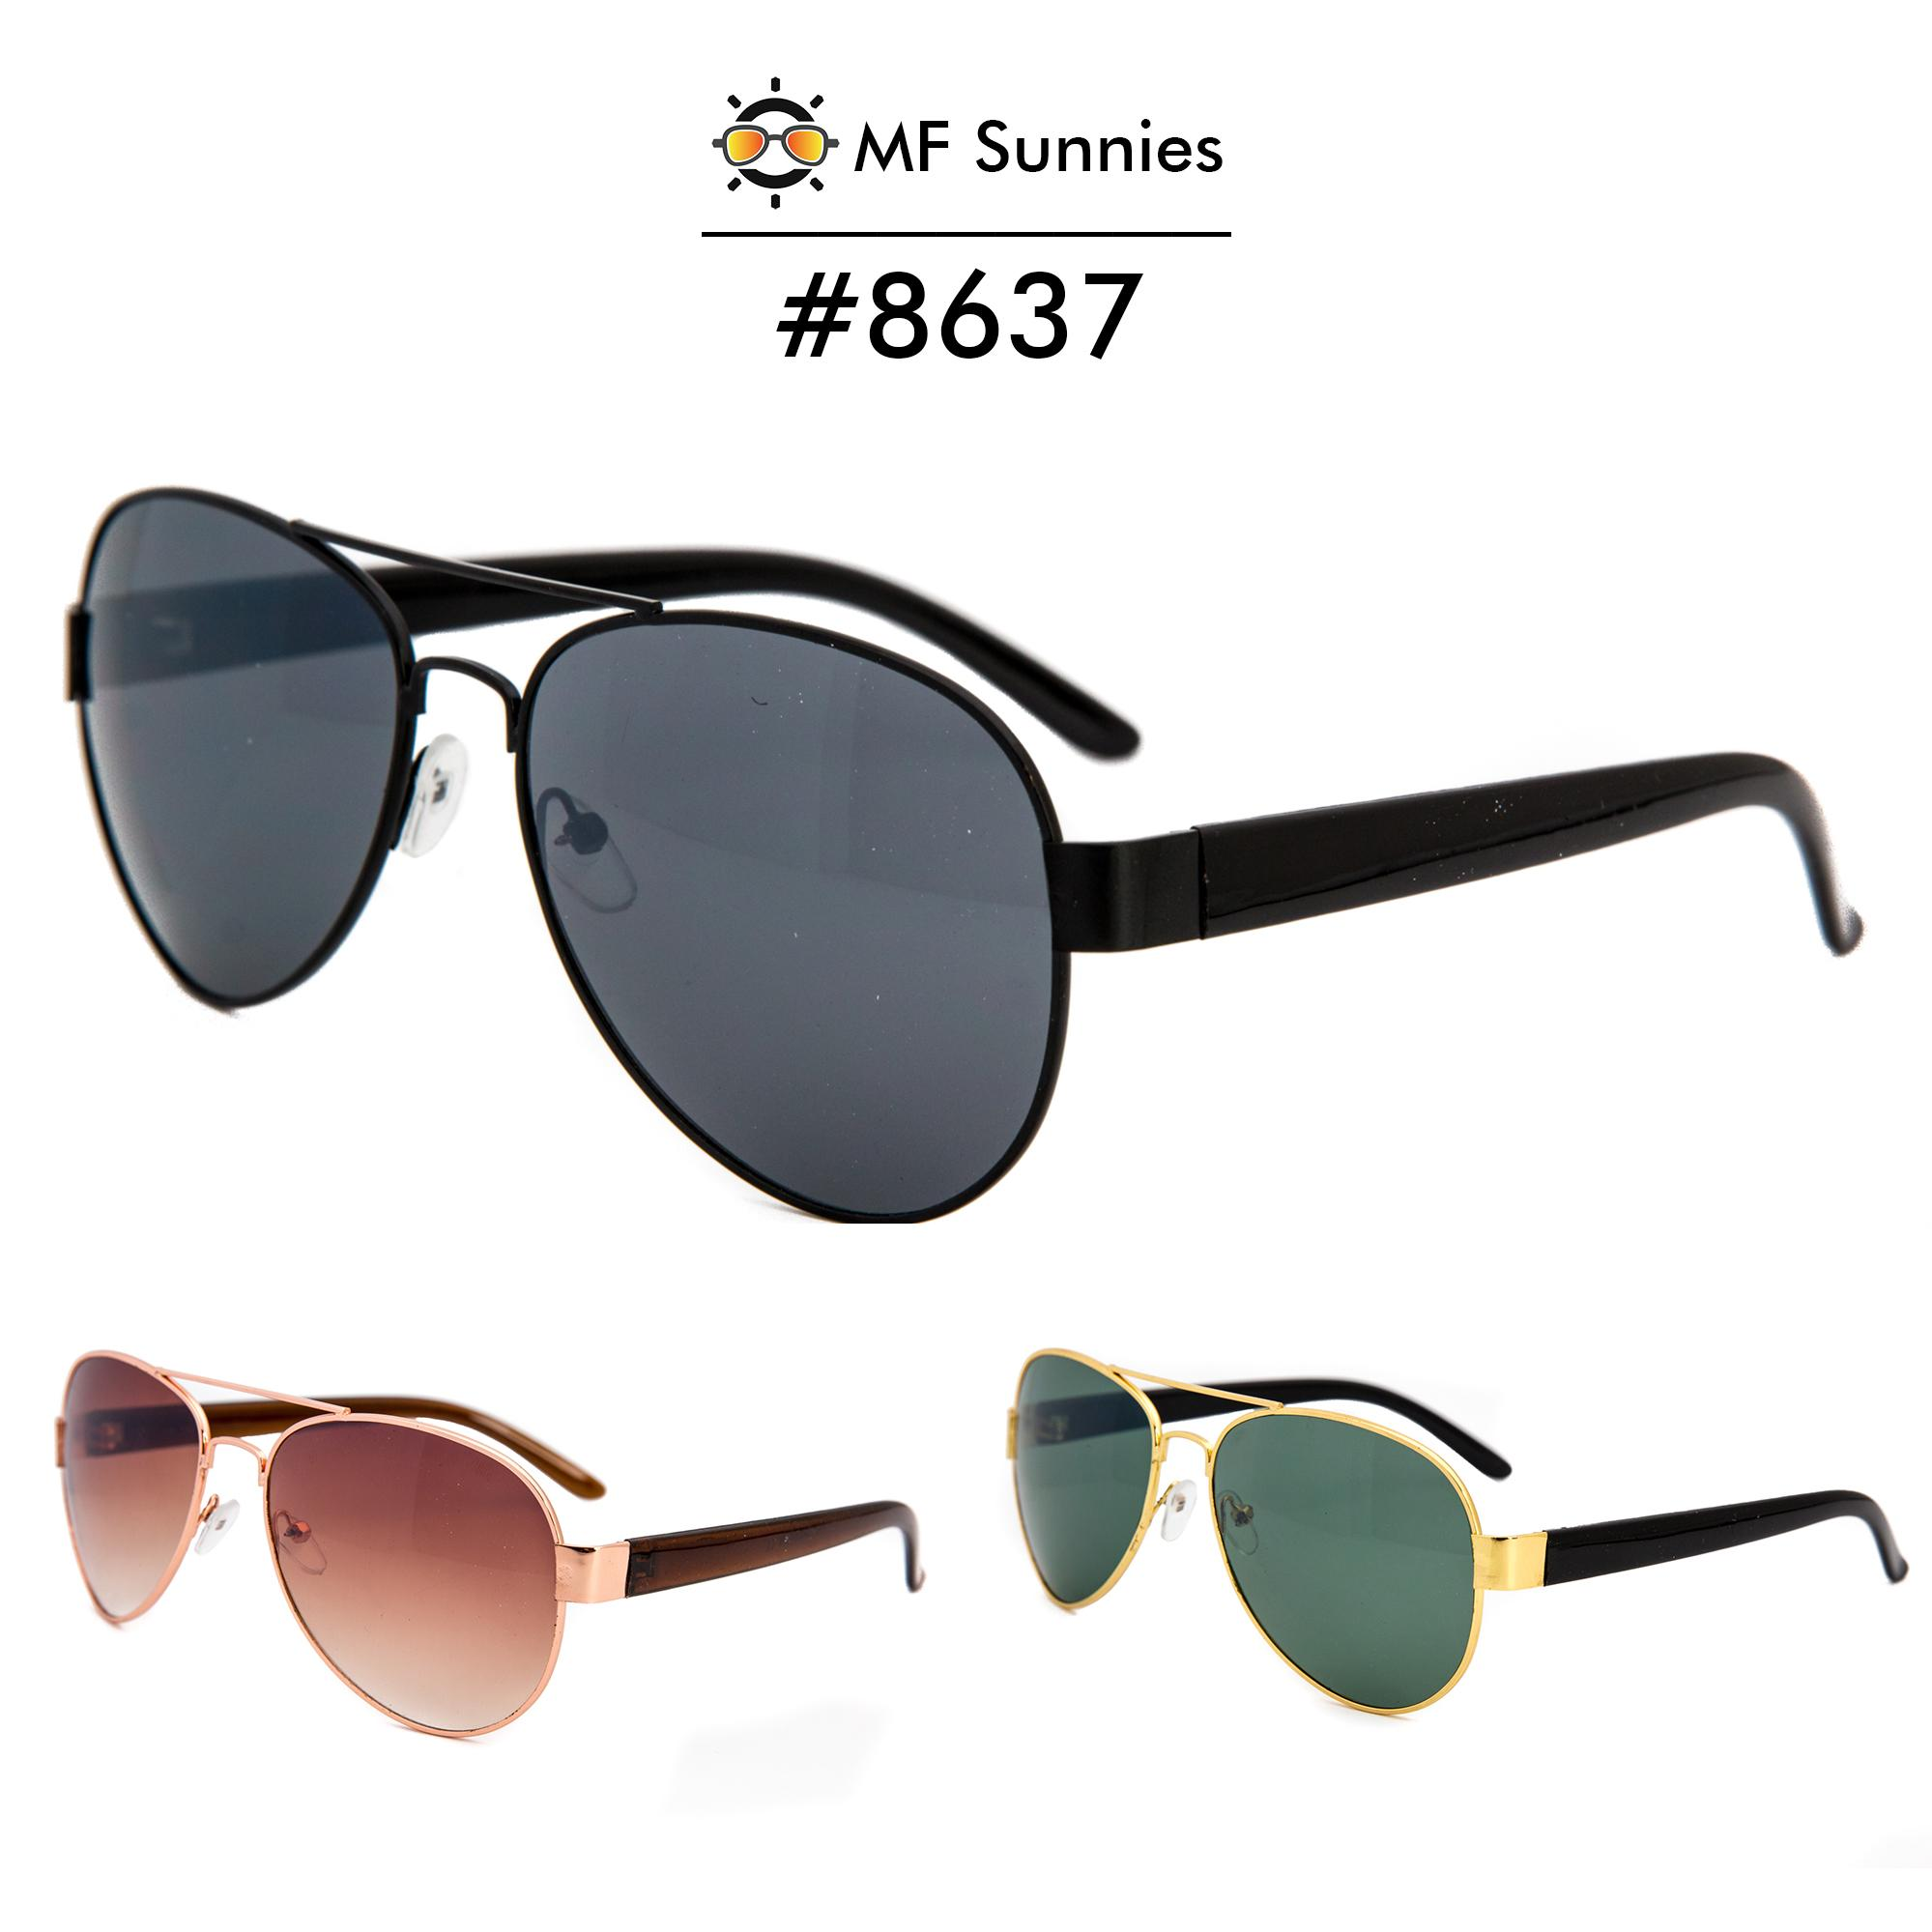 756e2e05444 MFSunnies Classic Aviator Sunglass Metal Frame Fashion Eyewear  8637